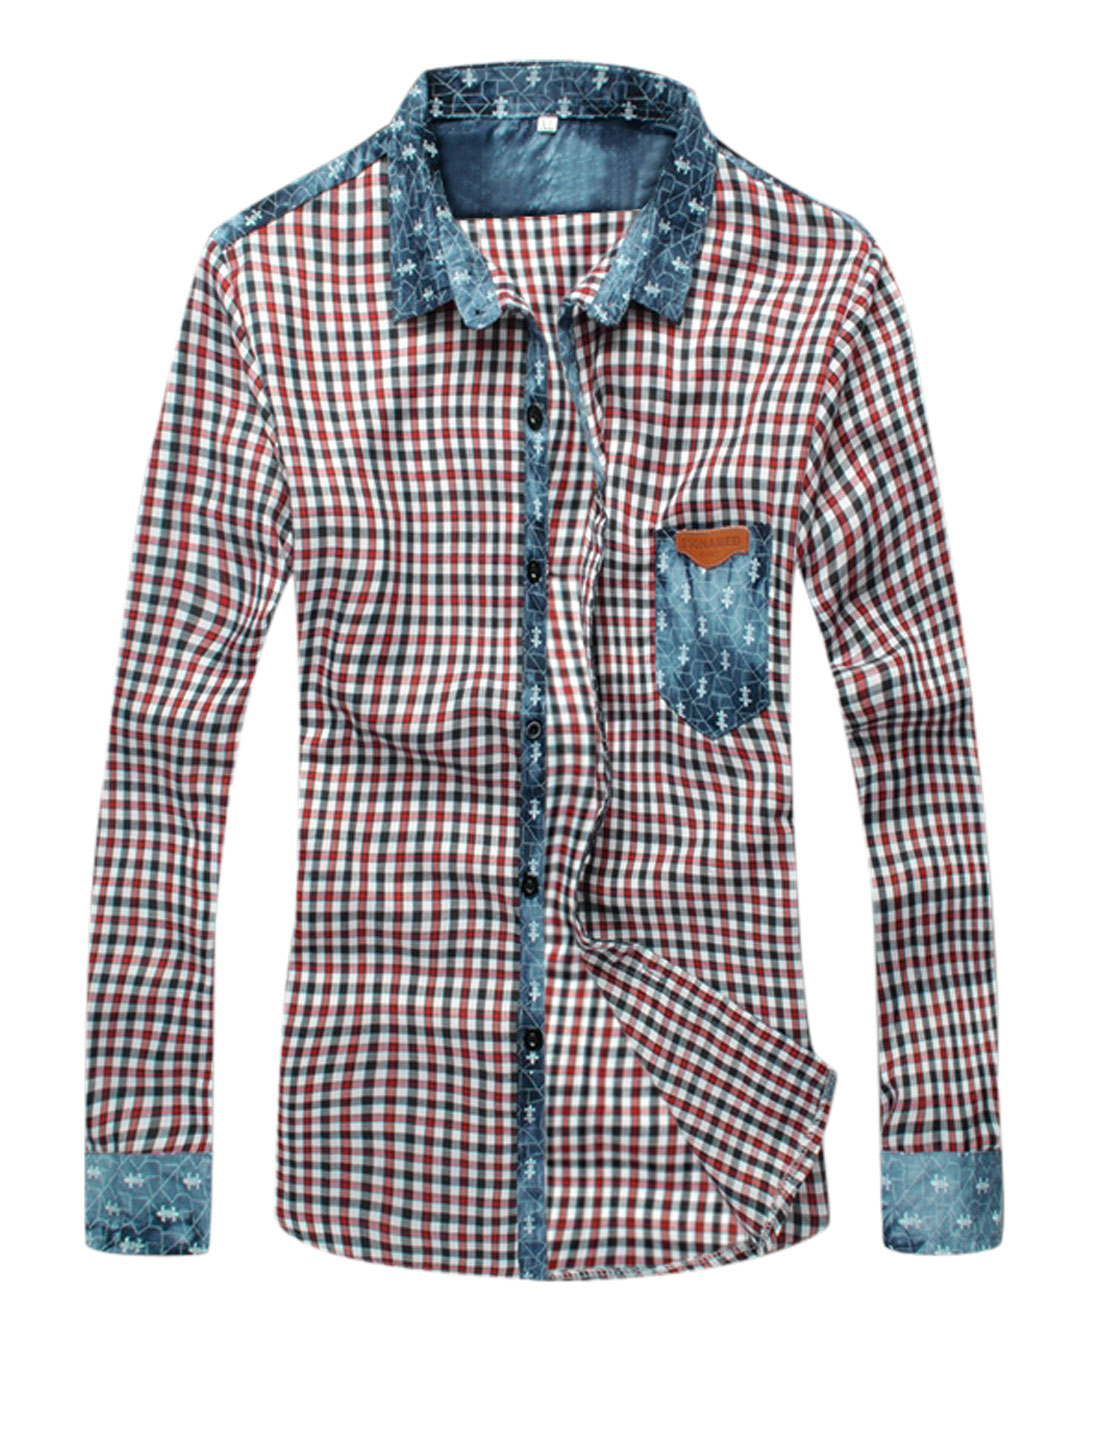 Man Panel Design Plaids Long Sleeves Red White Casual Shirt S